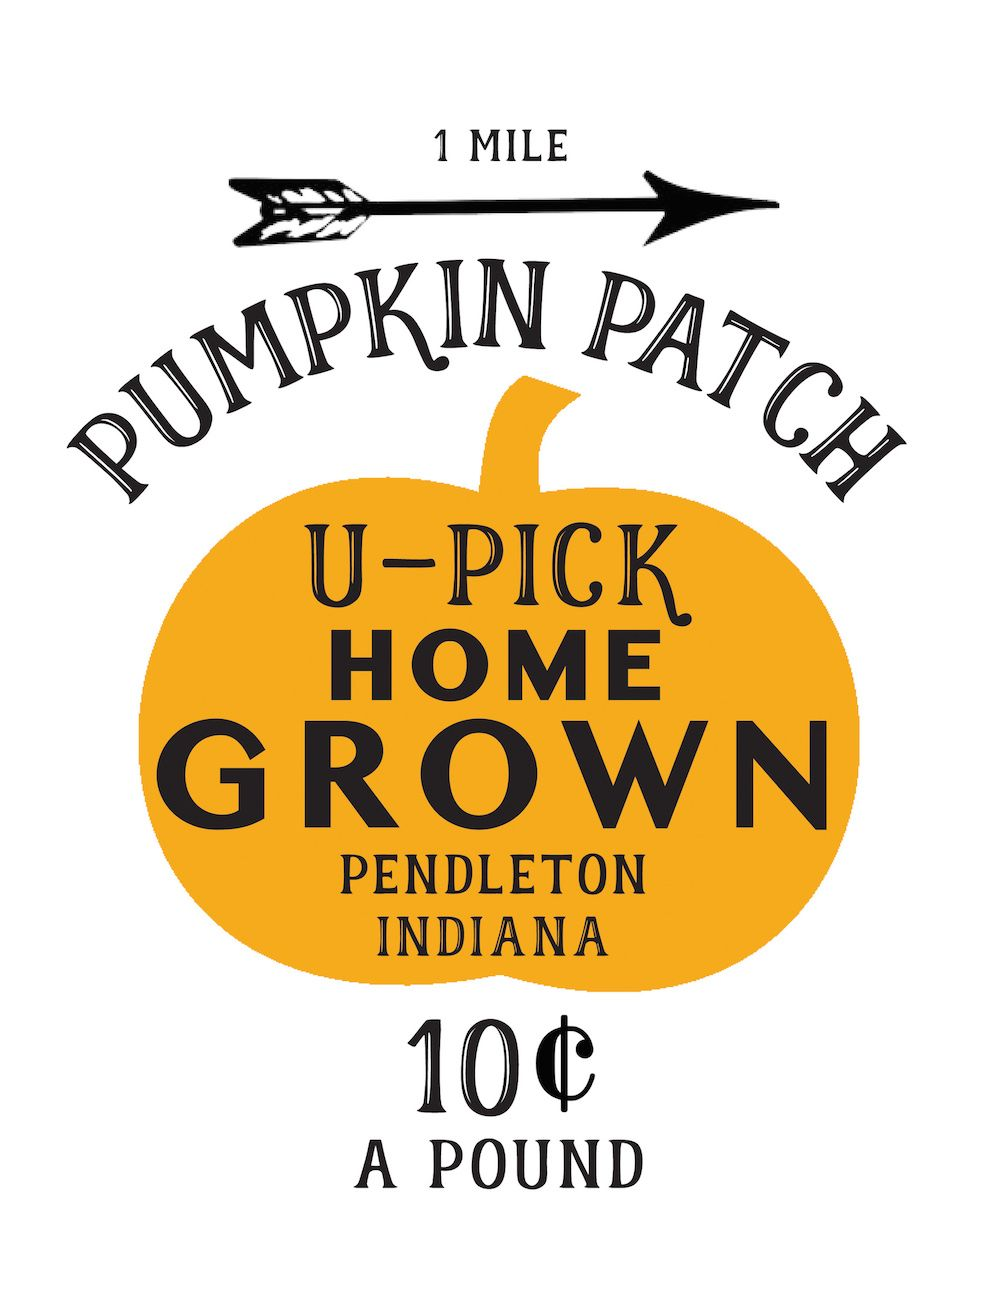 image relating to Printable Patches identify Pumpkin Patch Printable Going an Impression in direction of Wooden